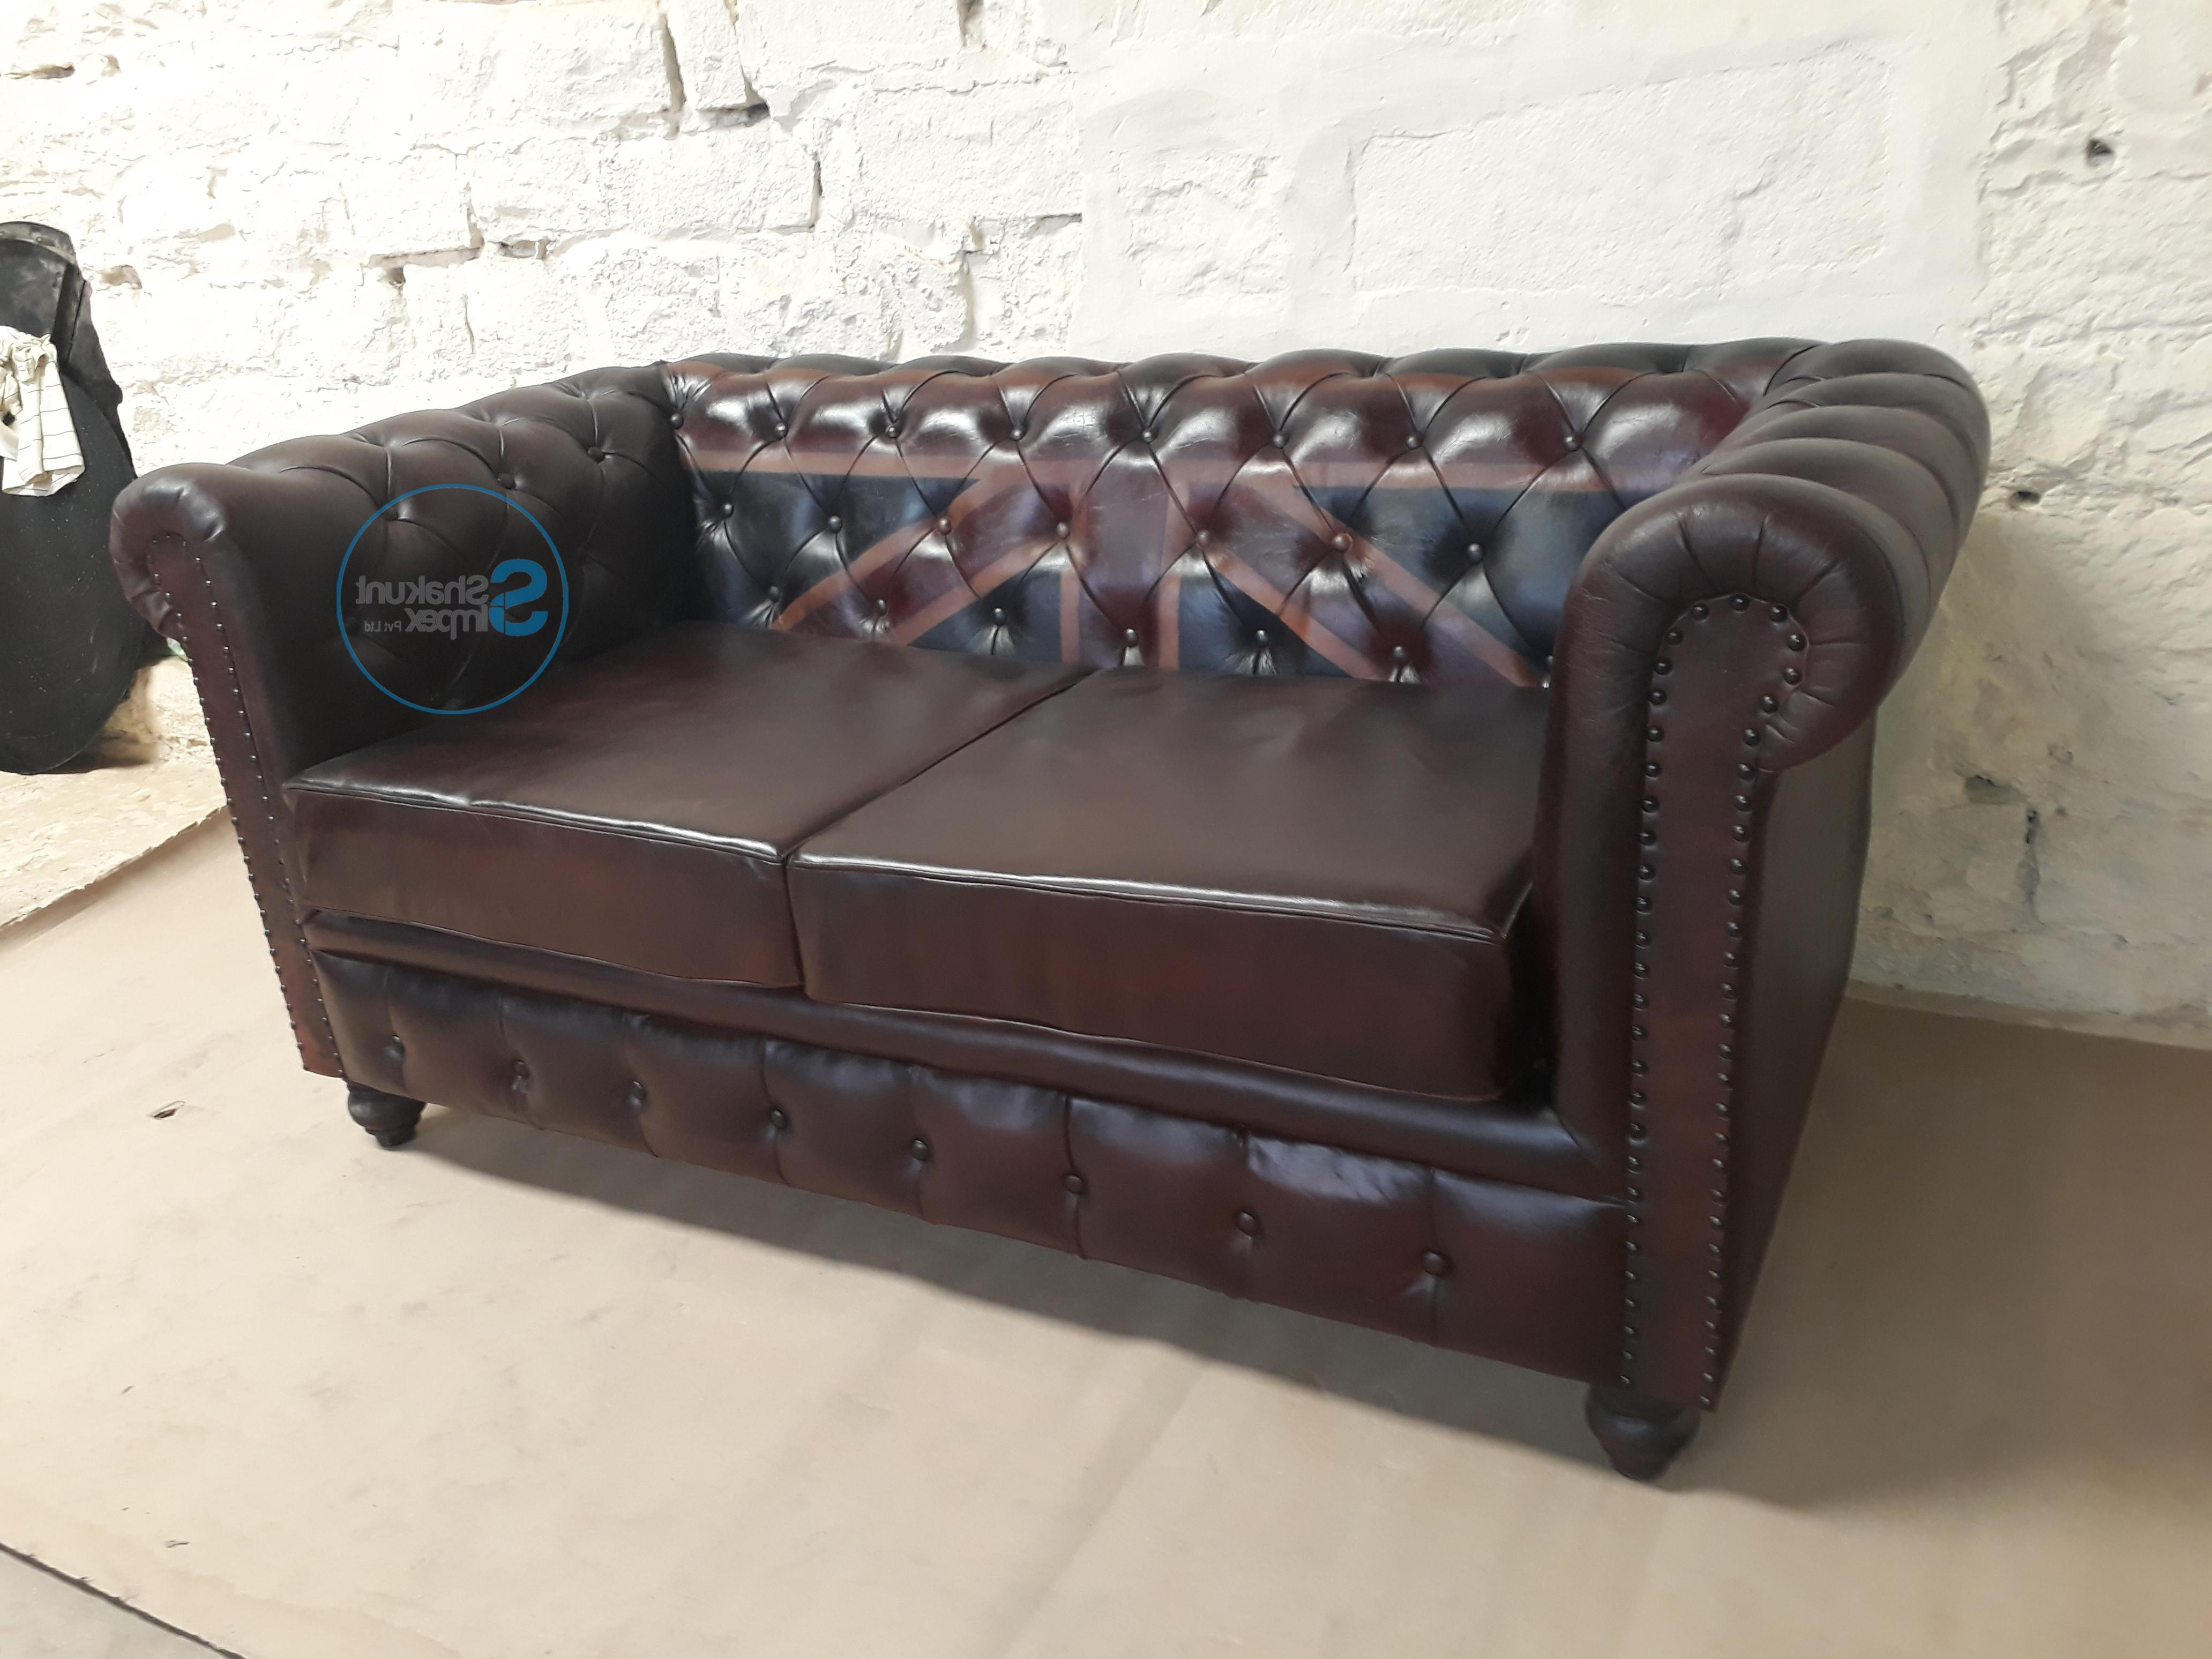 Vintage Chesterfield Sofas Intended For 2019 Vintage Leather Chesterfield Union Jack Sofa – Shakunt Vintage (View 10 of 20)